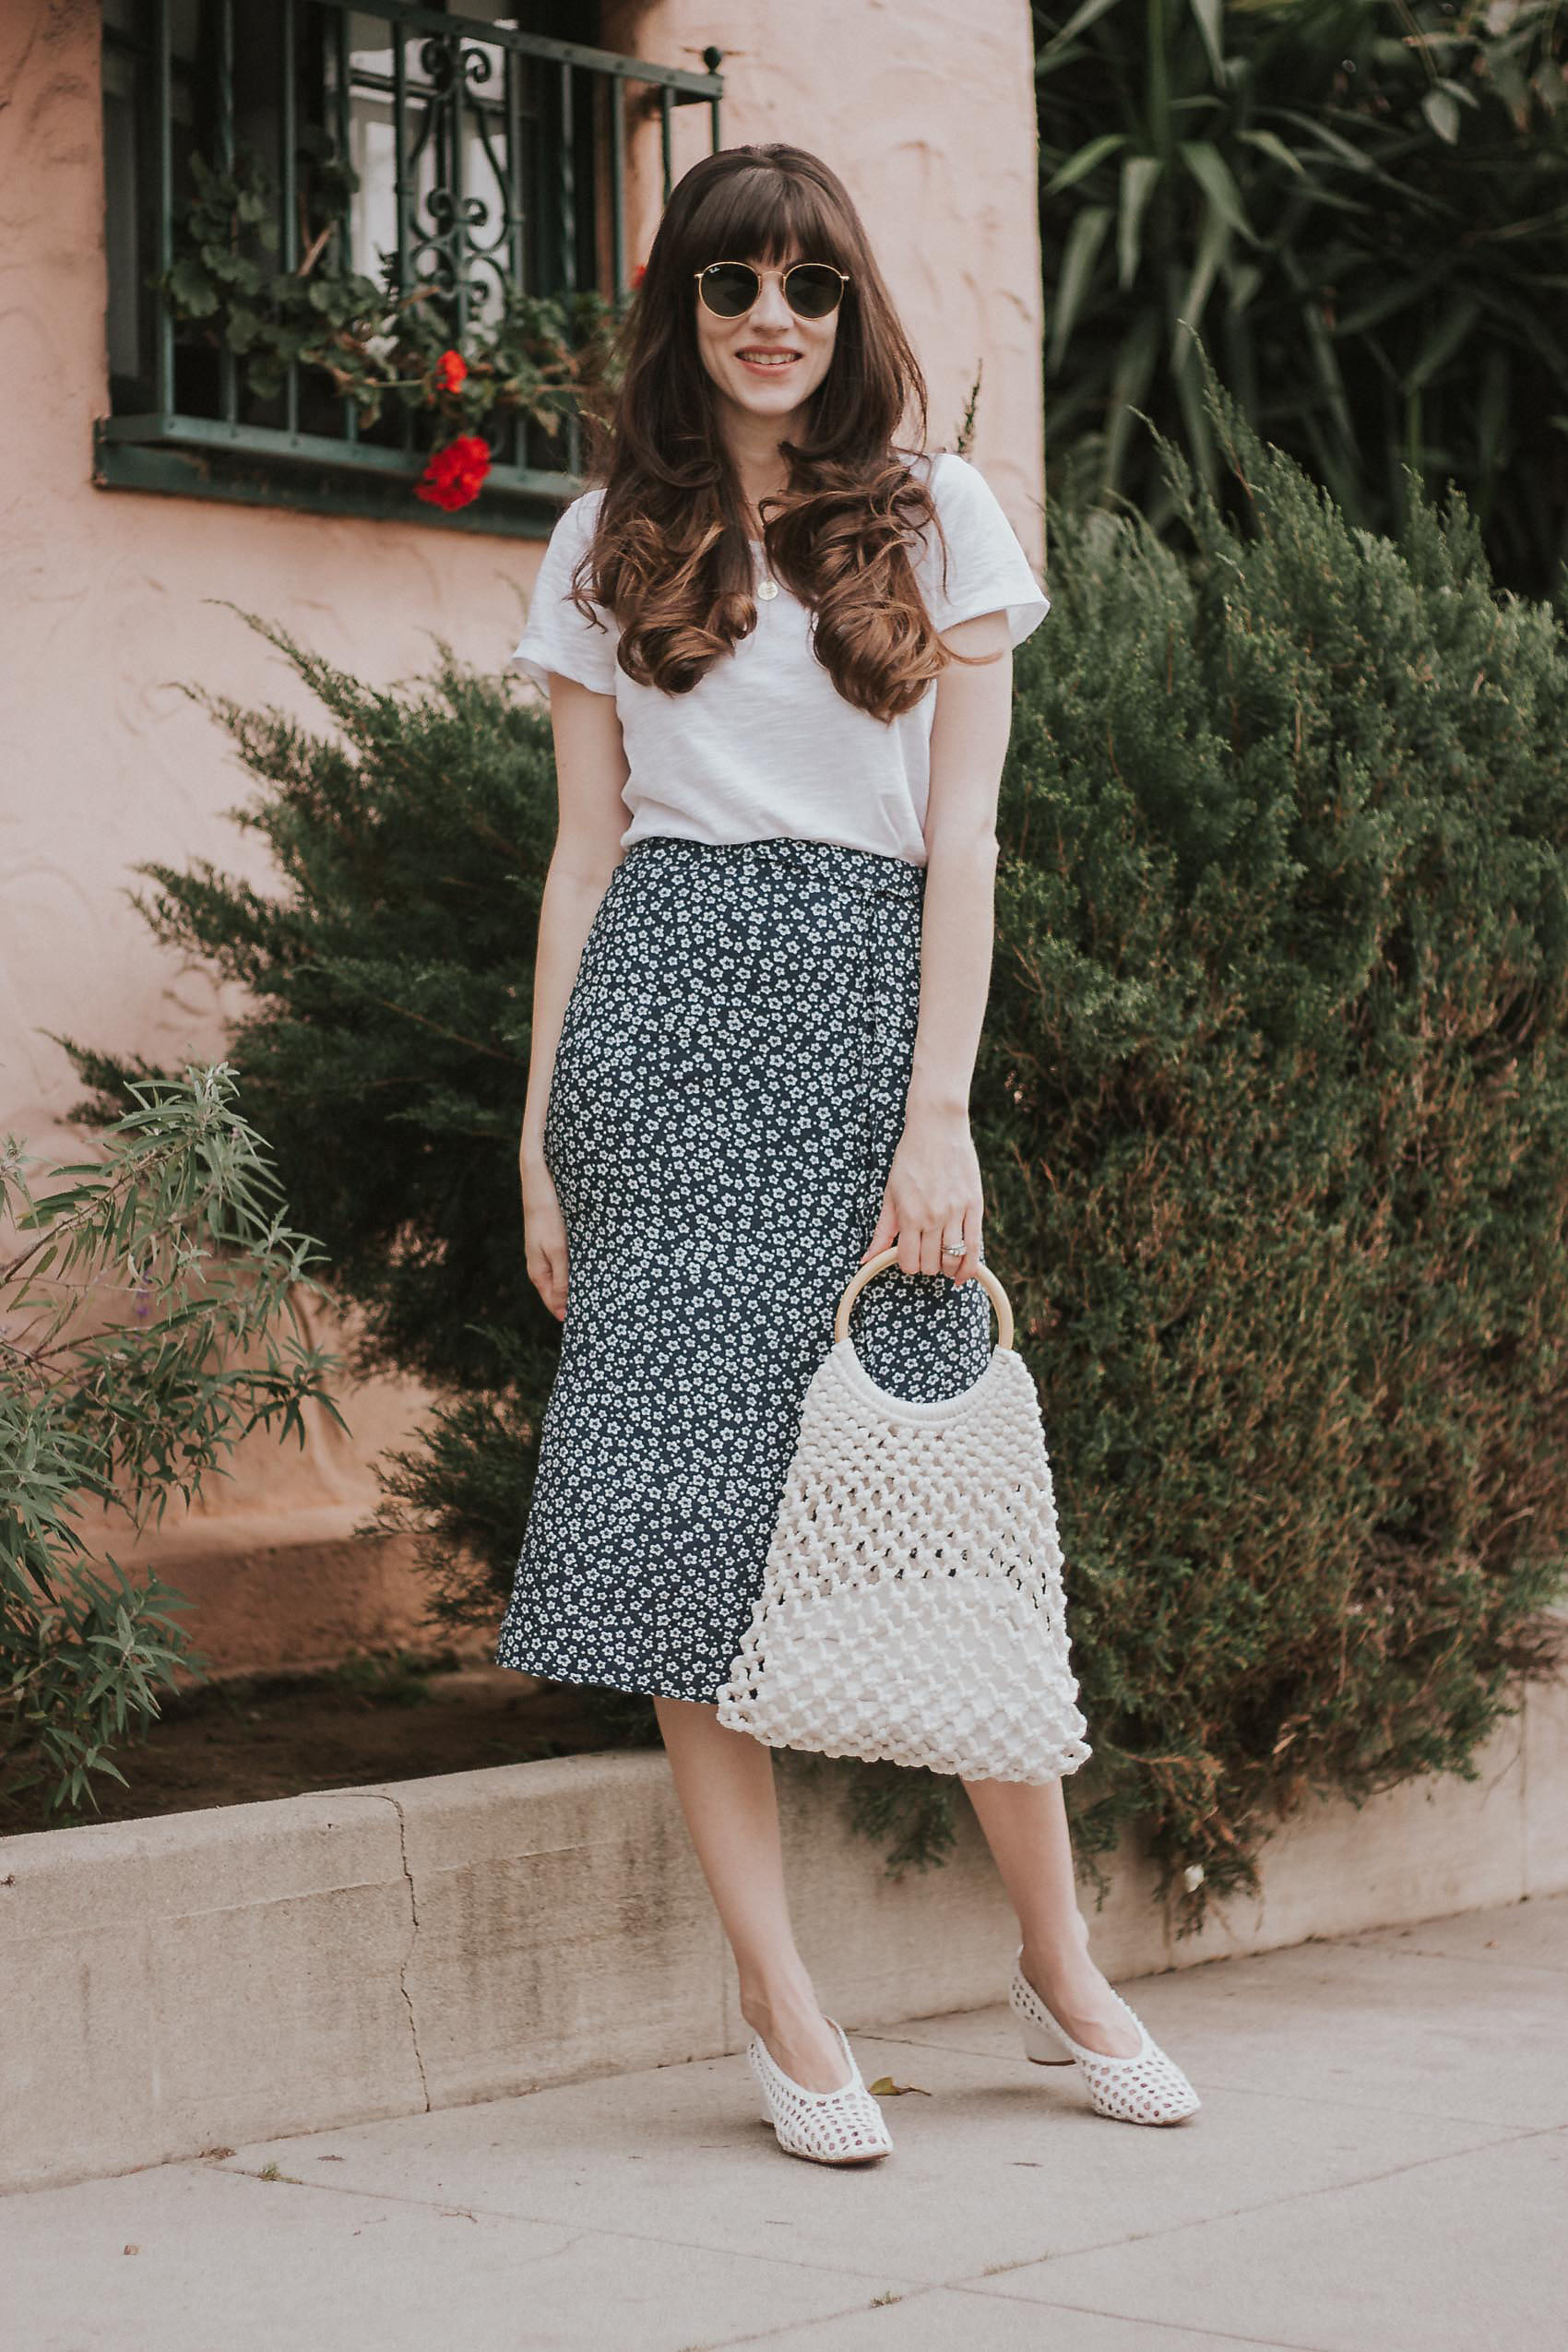 French inspired outfit on Los Angeles Fashion Blogger